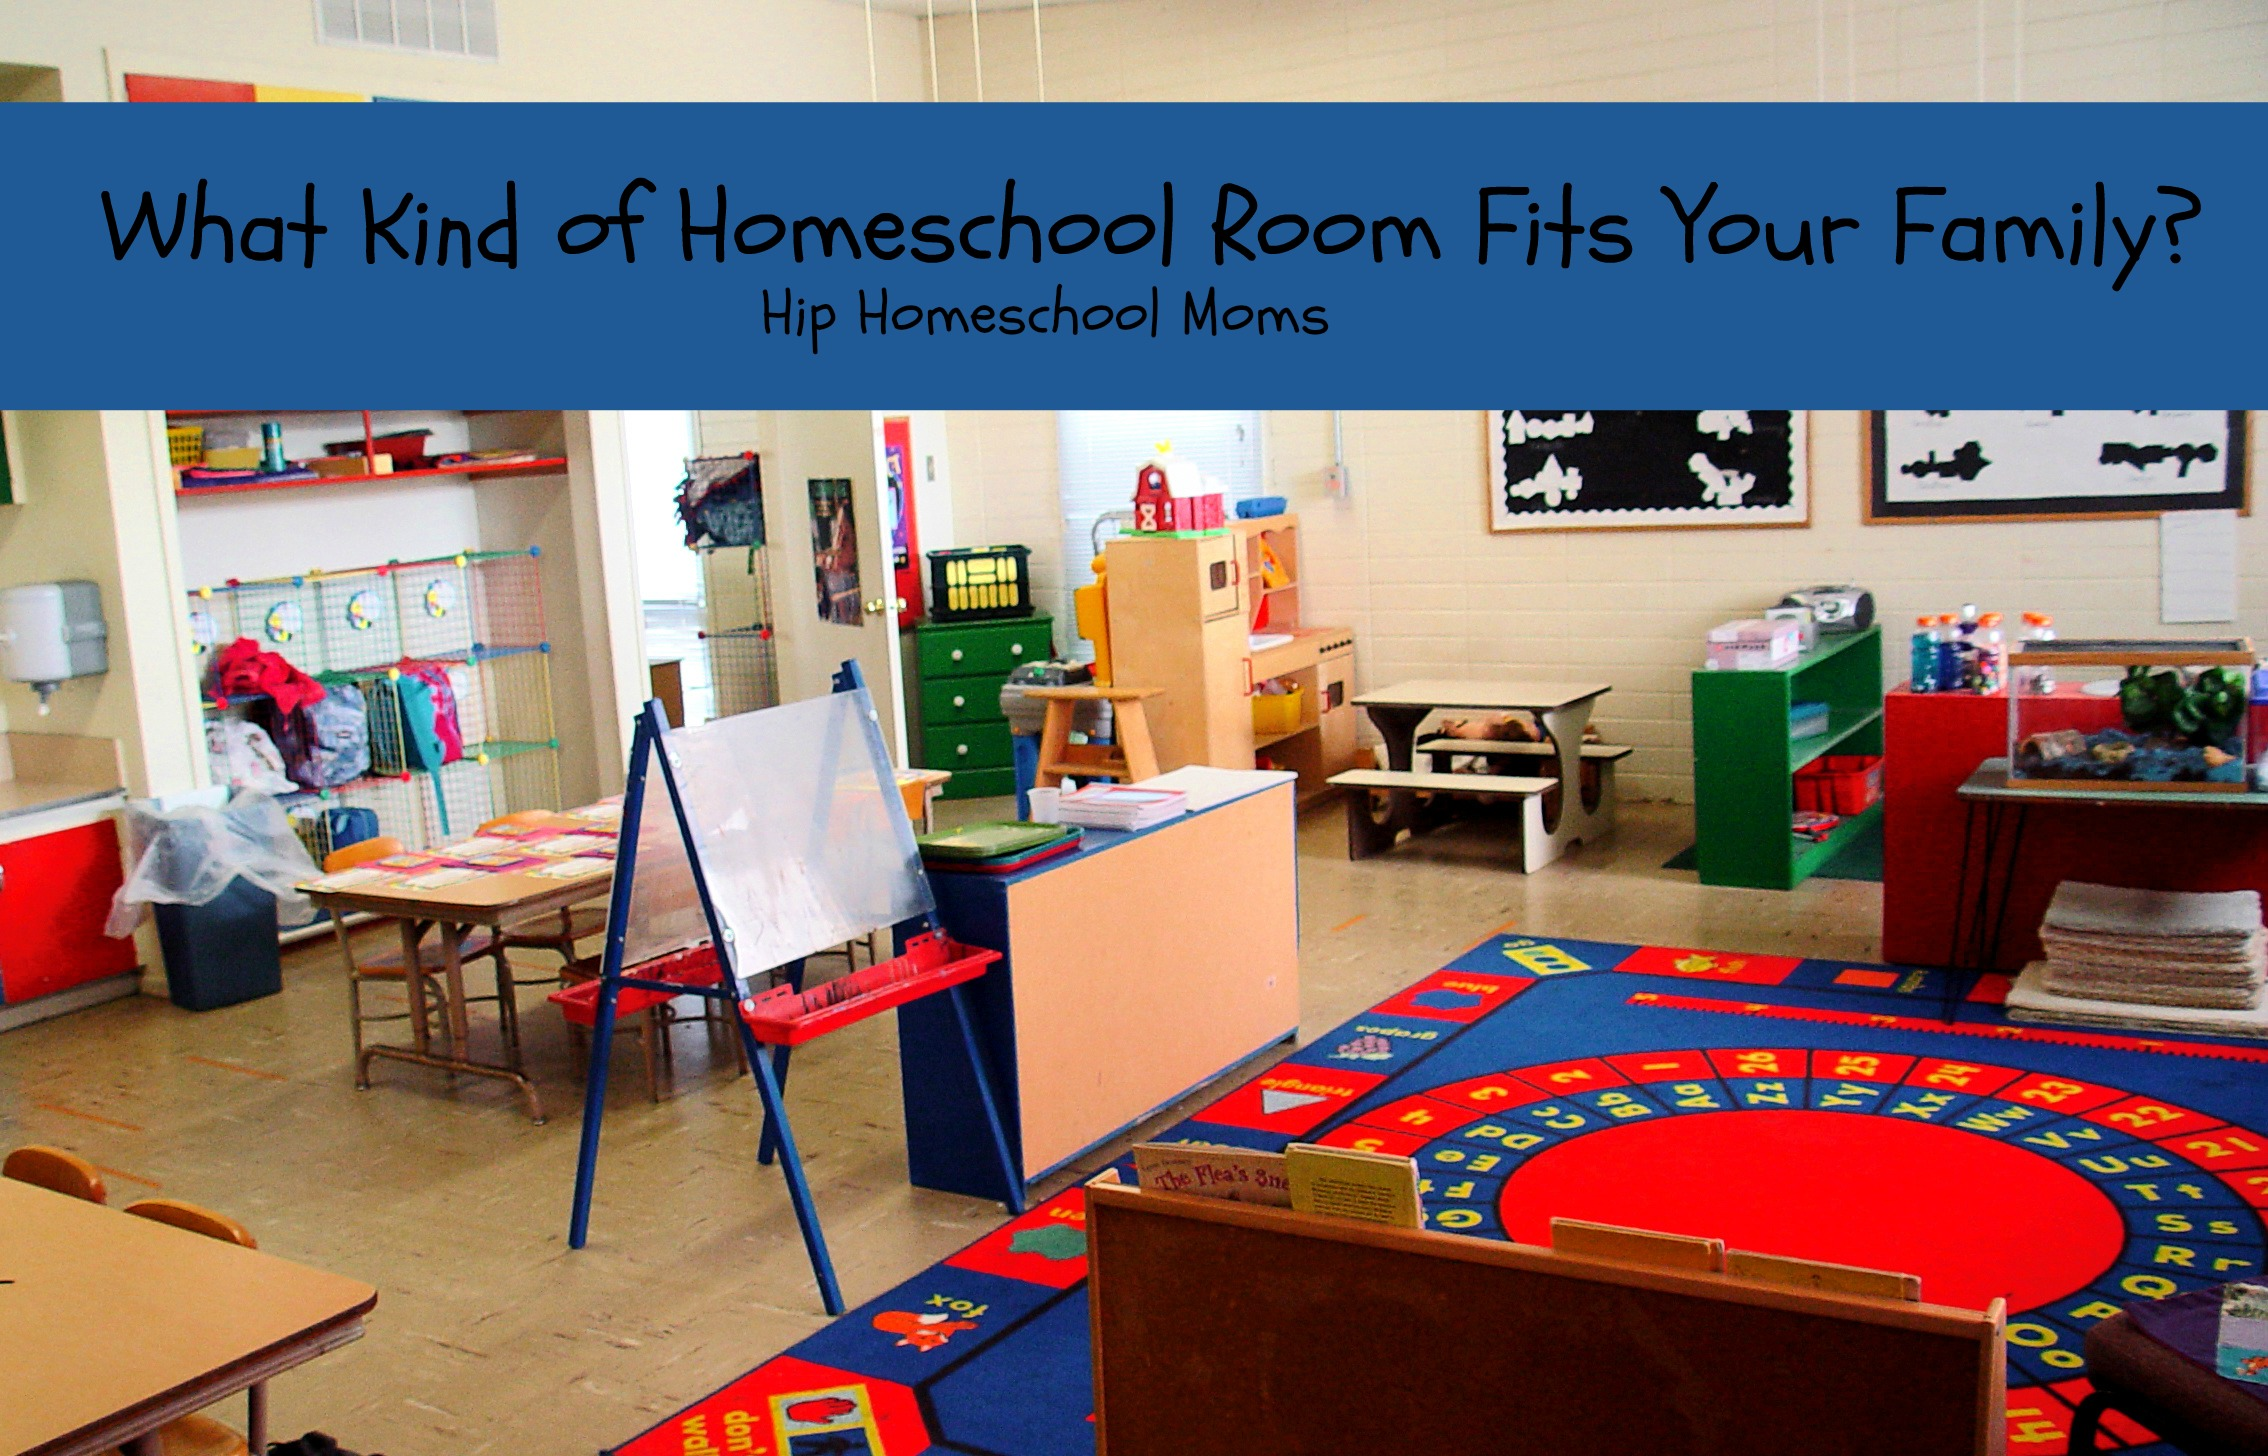 HHM What Kind of Homeschool Room Fits Your Family